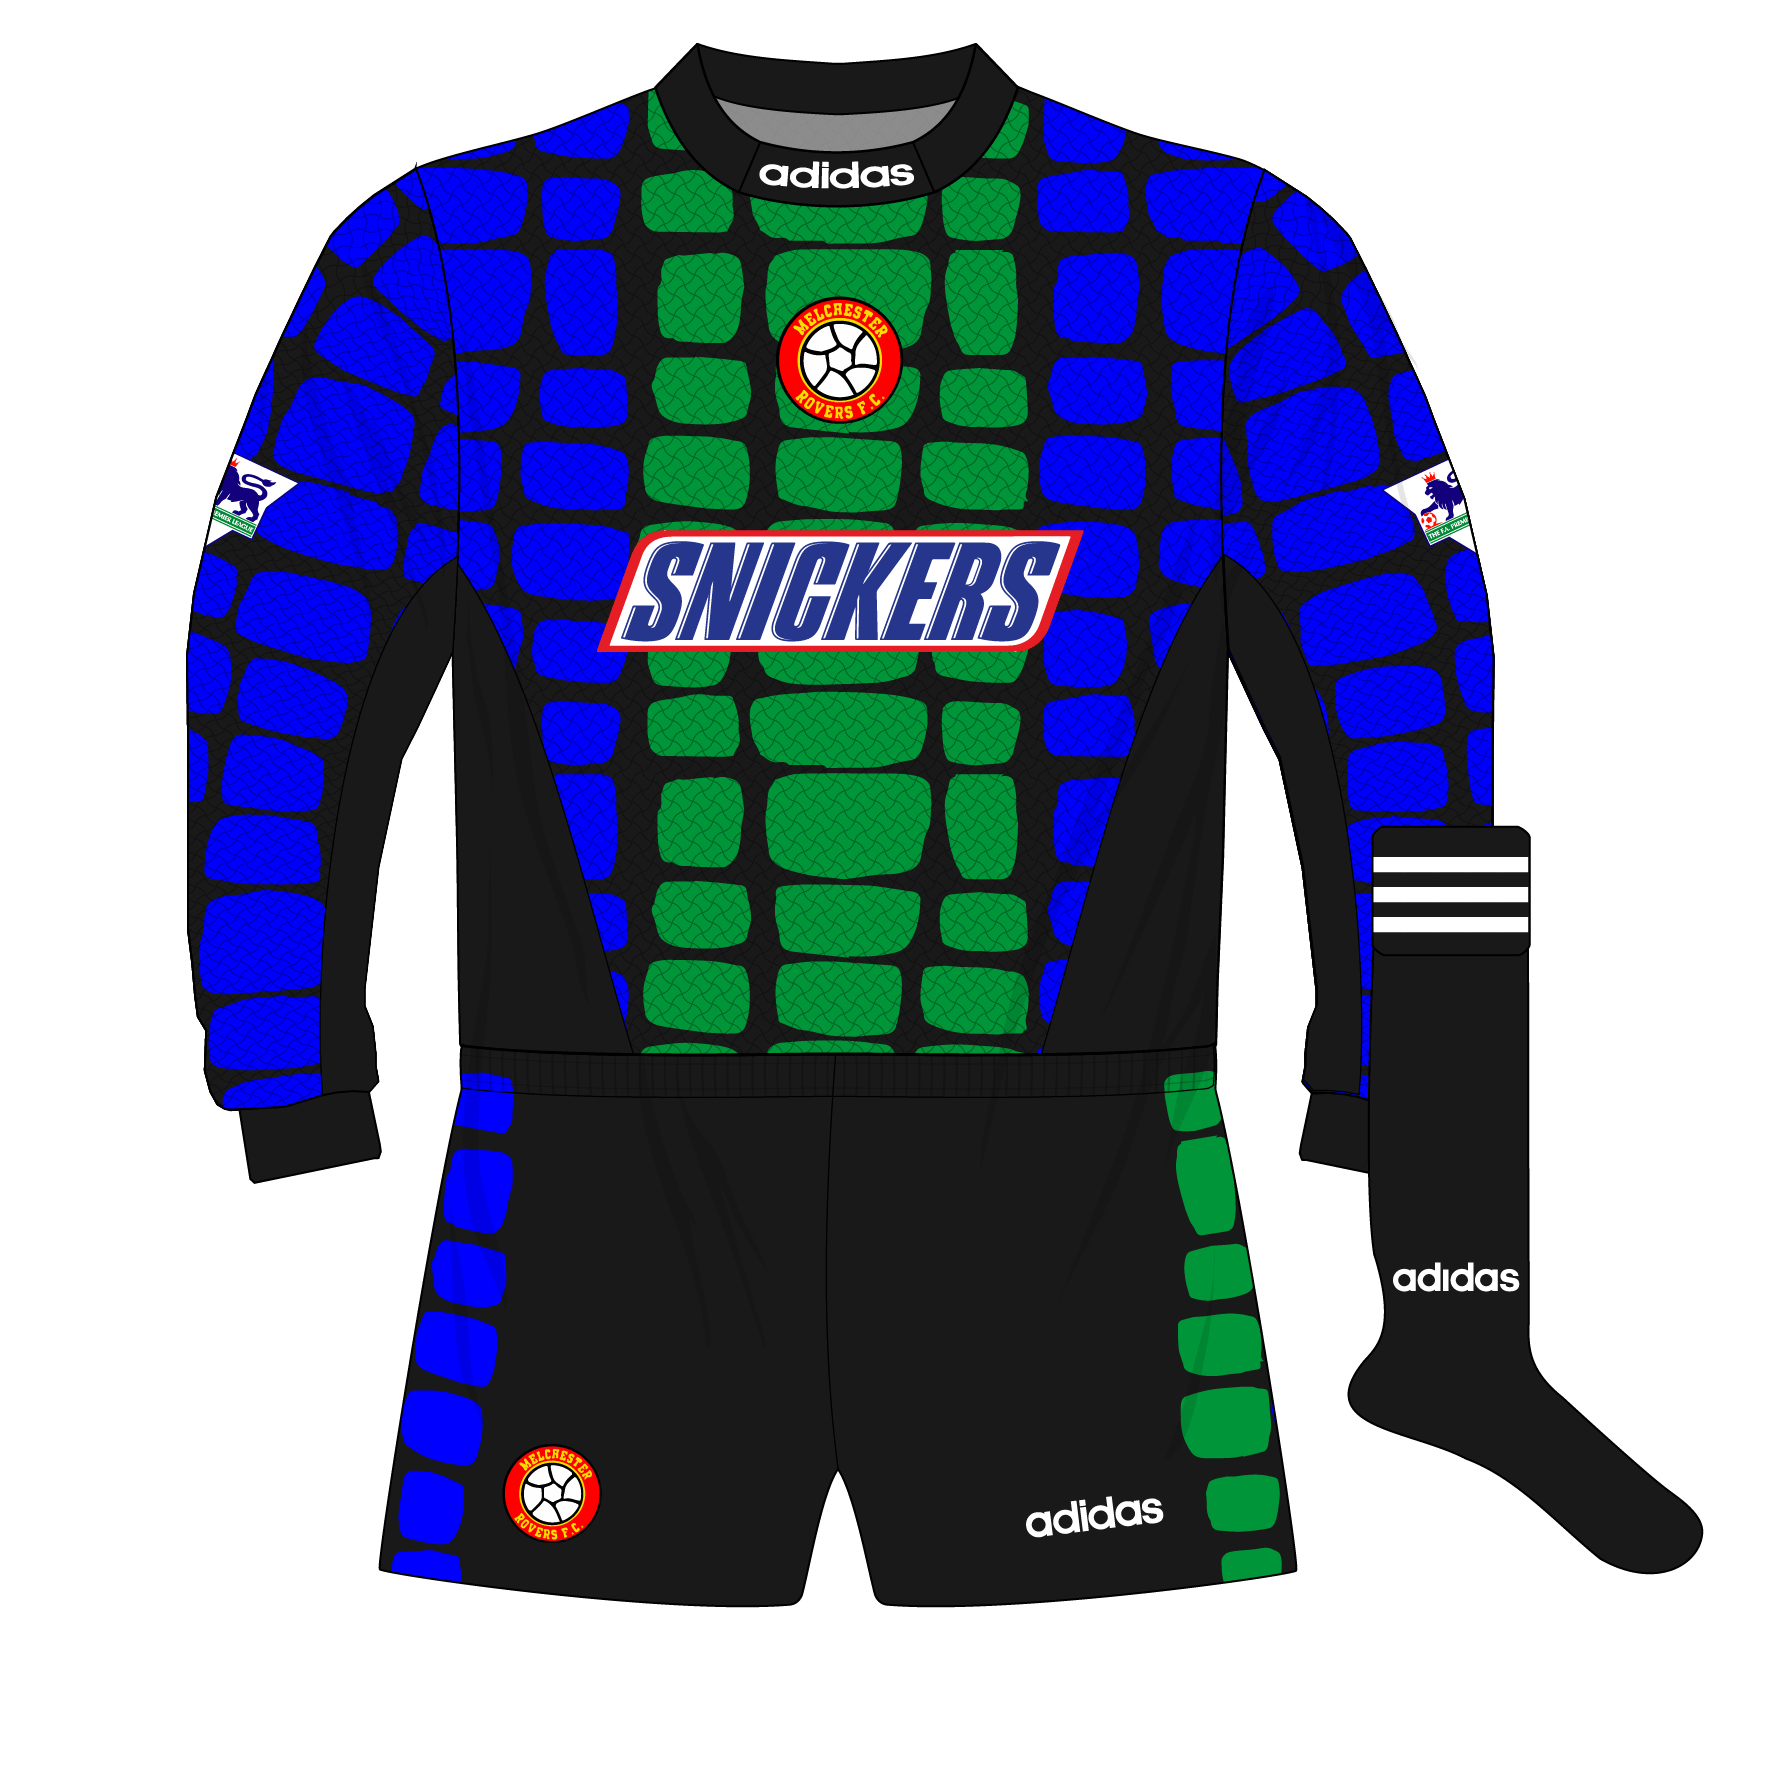 Melchester-Rovers-adidas-fantasy-1994-1995-goalkeeper-Andy-Styles-01